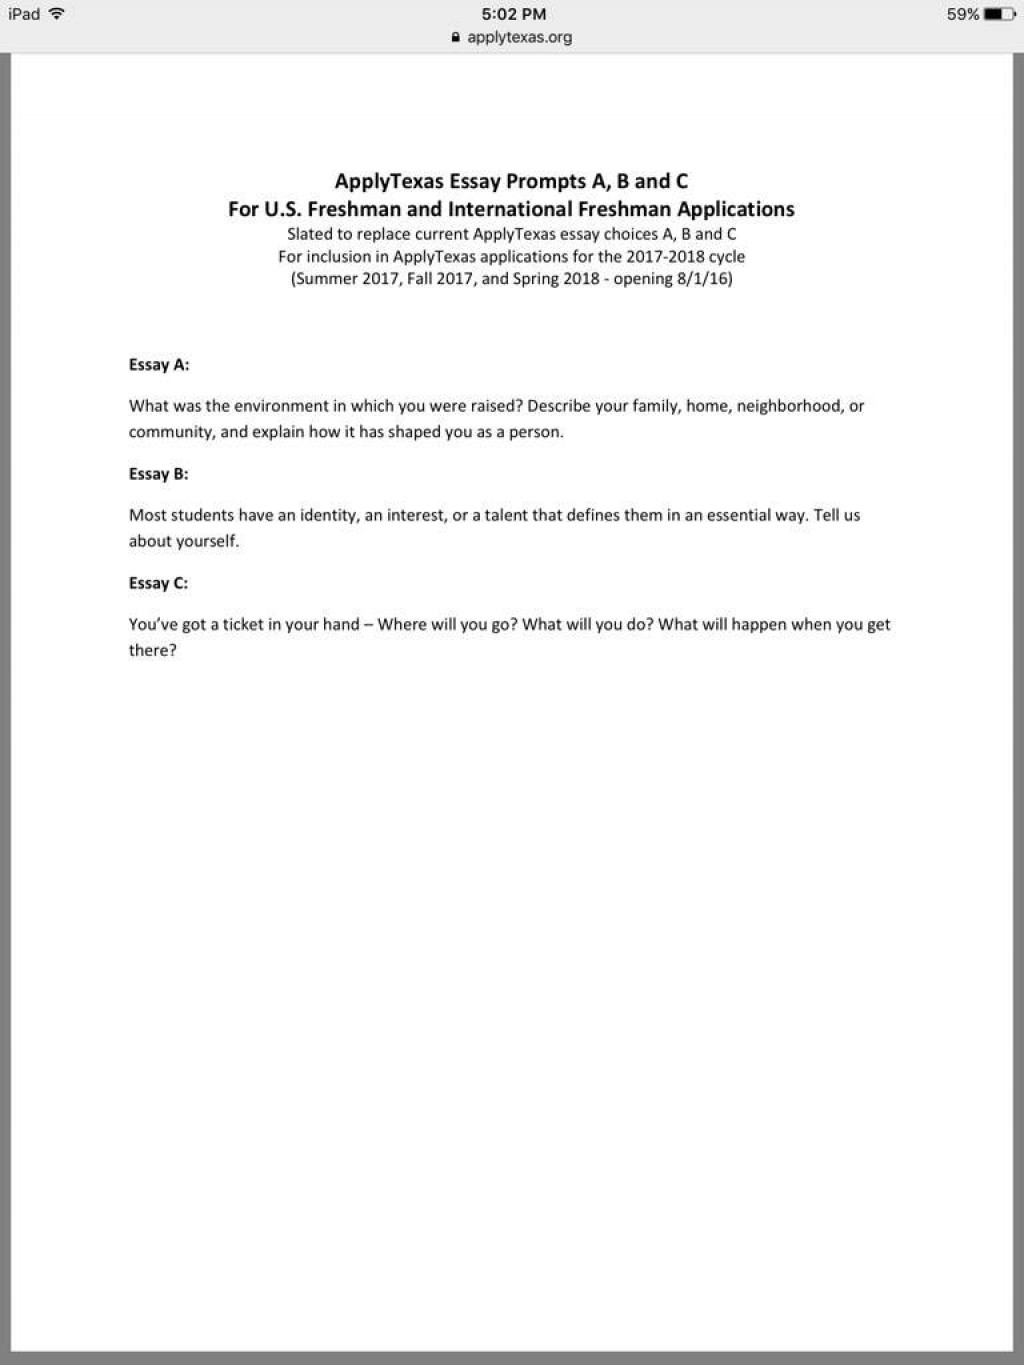 004 Apply Texas Essay Topics 427aa3812b5df54f56a41e0a54db6e765049eada Hq Archaicawful Prompt C Example Topic Examples A Large